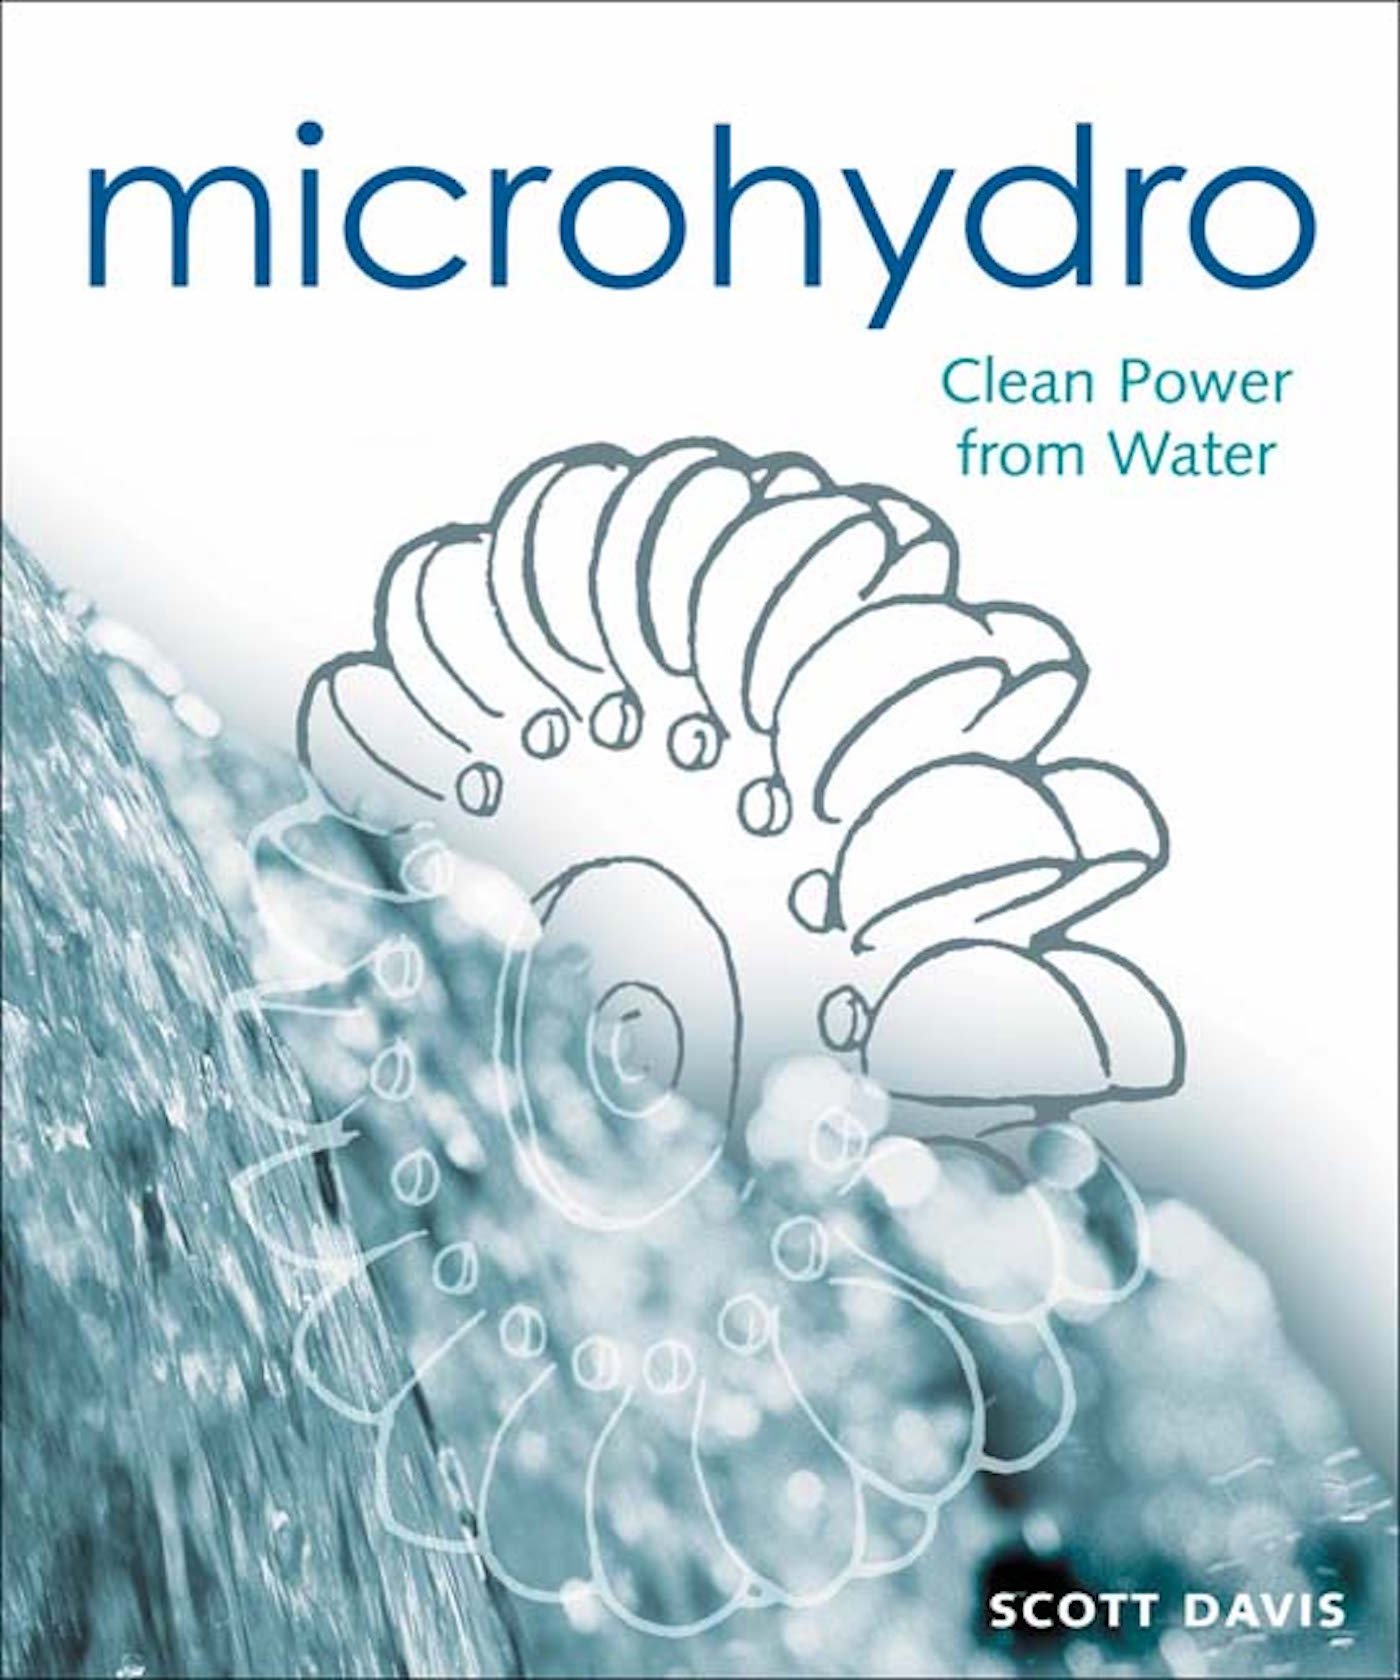 Microhydro: Clean Power From Water (wise Living): Scott Davis, Corrie  Laschuk: 9780865714847: Amazon: Books